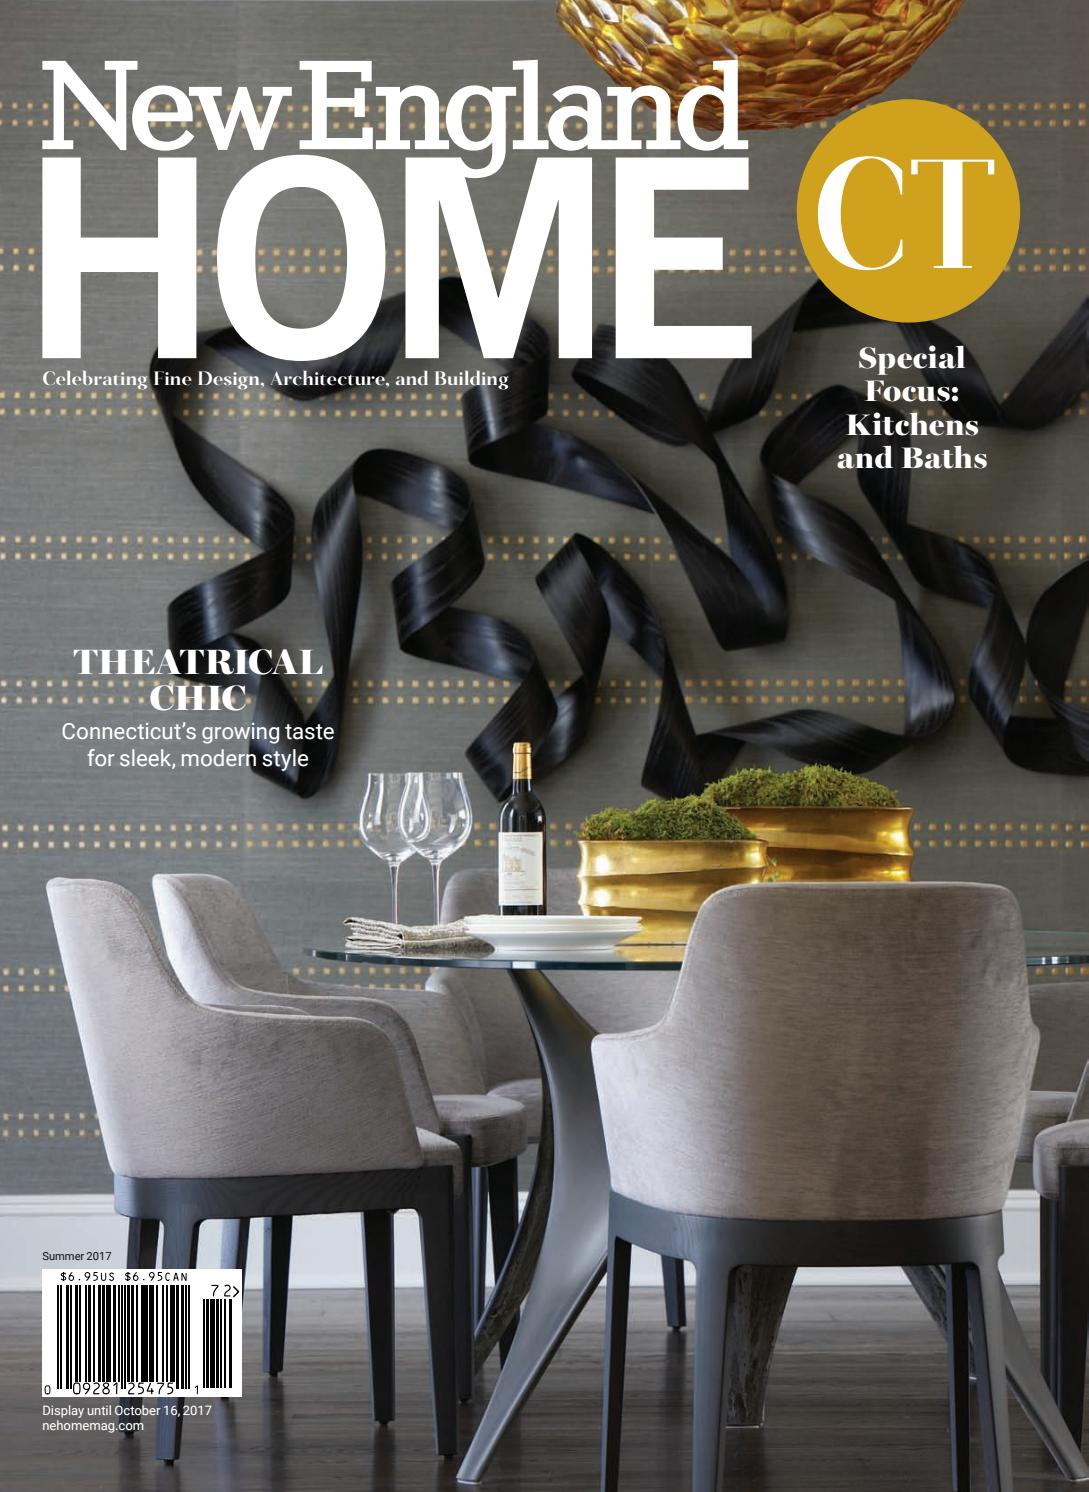 New england home connecticut summer 2017 by new england home magazine llc issuu